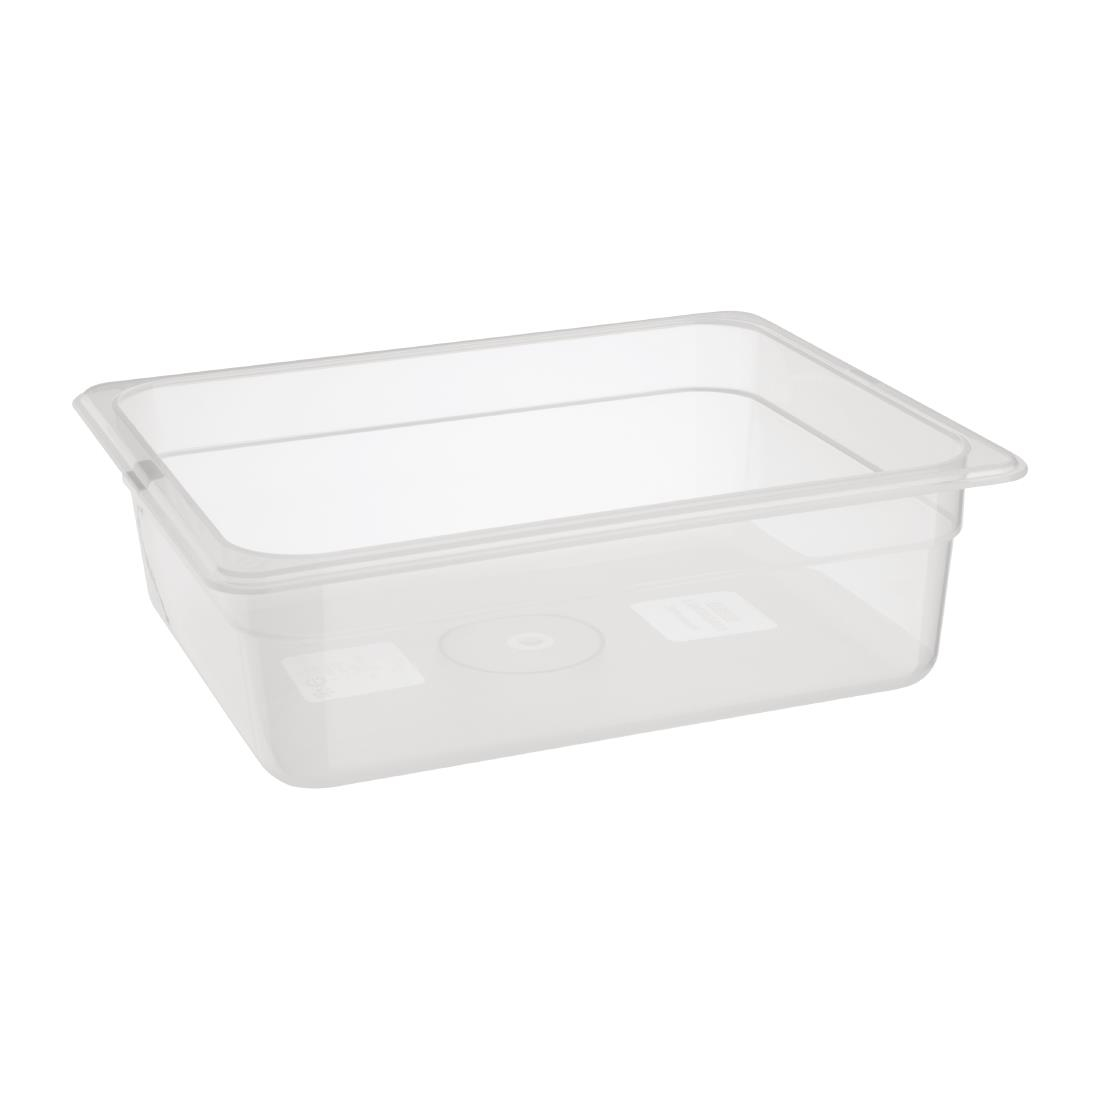 Image of Nisbets Essentials Polypropylene 1/2 Gastronorm 100mm